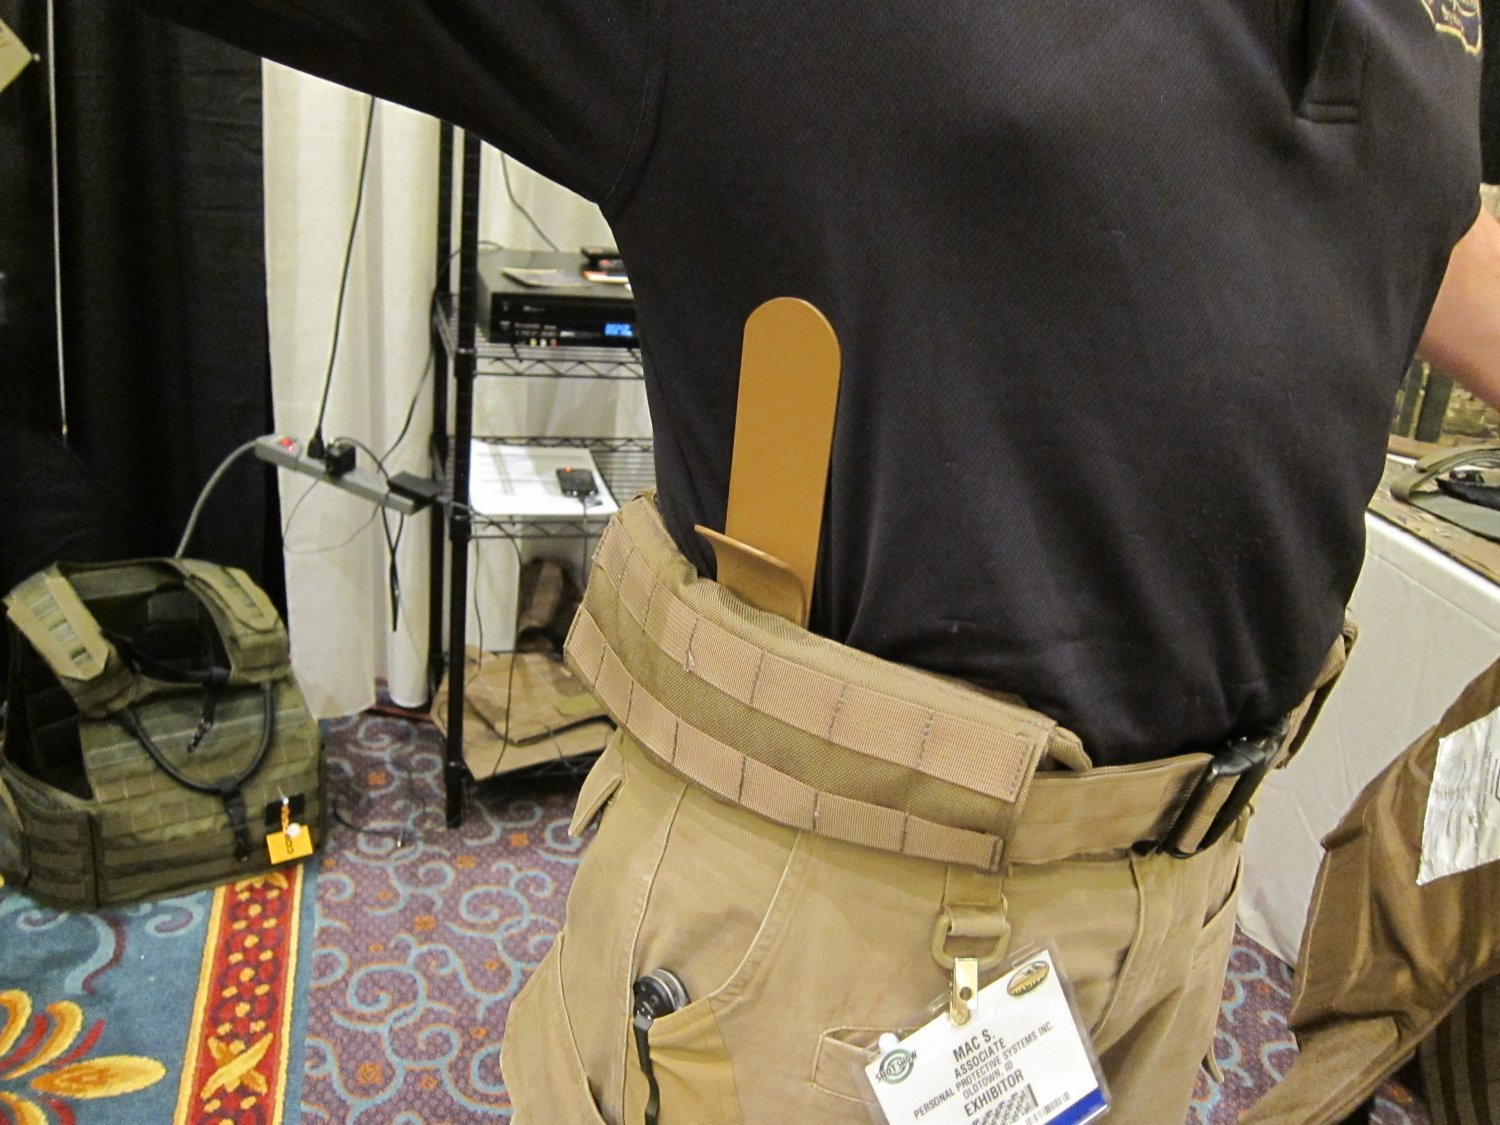 P2 Systems P2Sys Centurion Amour Integra Belt Battle Belt with Integral Armor Waist Supports Plastic Stays at SHOT Show 2011 3 <!  :en  >Hardpoint Equipment Tactical Armor Carriers (formerly Personal Protective Systems, or P2 Systems): Best Tactical Body Armor Plate Carriers on the Planet? DR Looks at the Latest Hard Point Hard Armor Plate Carriers, Battle Belt, MOLLE Backpack System, and Passive Ventilation Channels/Removable Padding System at SHOT Show 2011 (Photos and Video!) <!  :  >